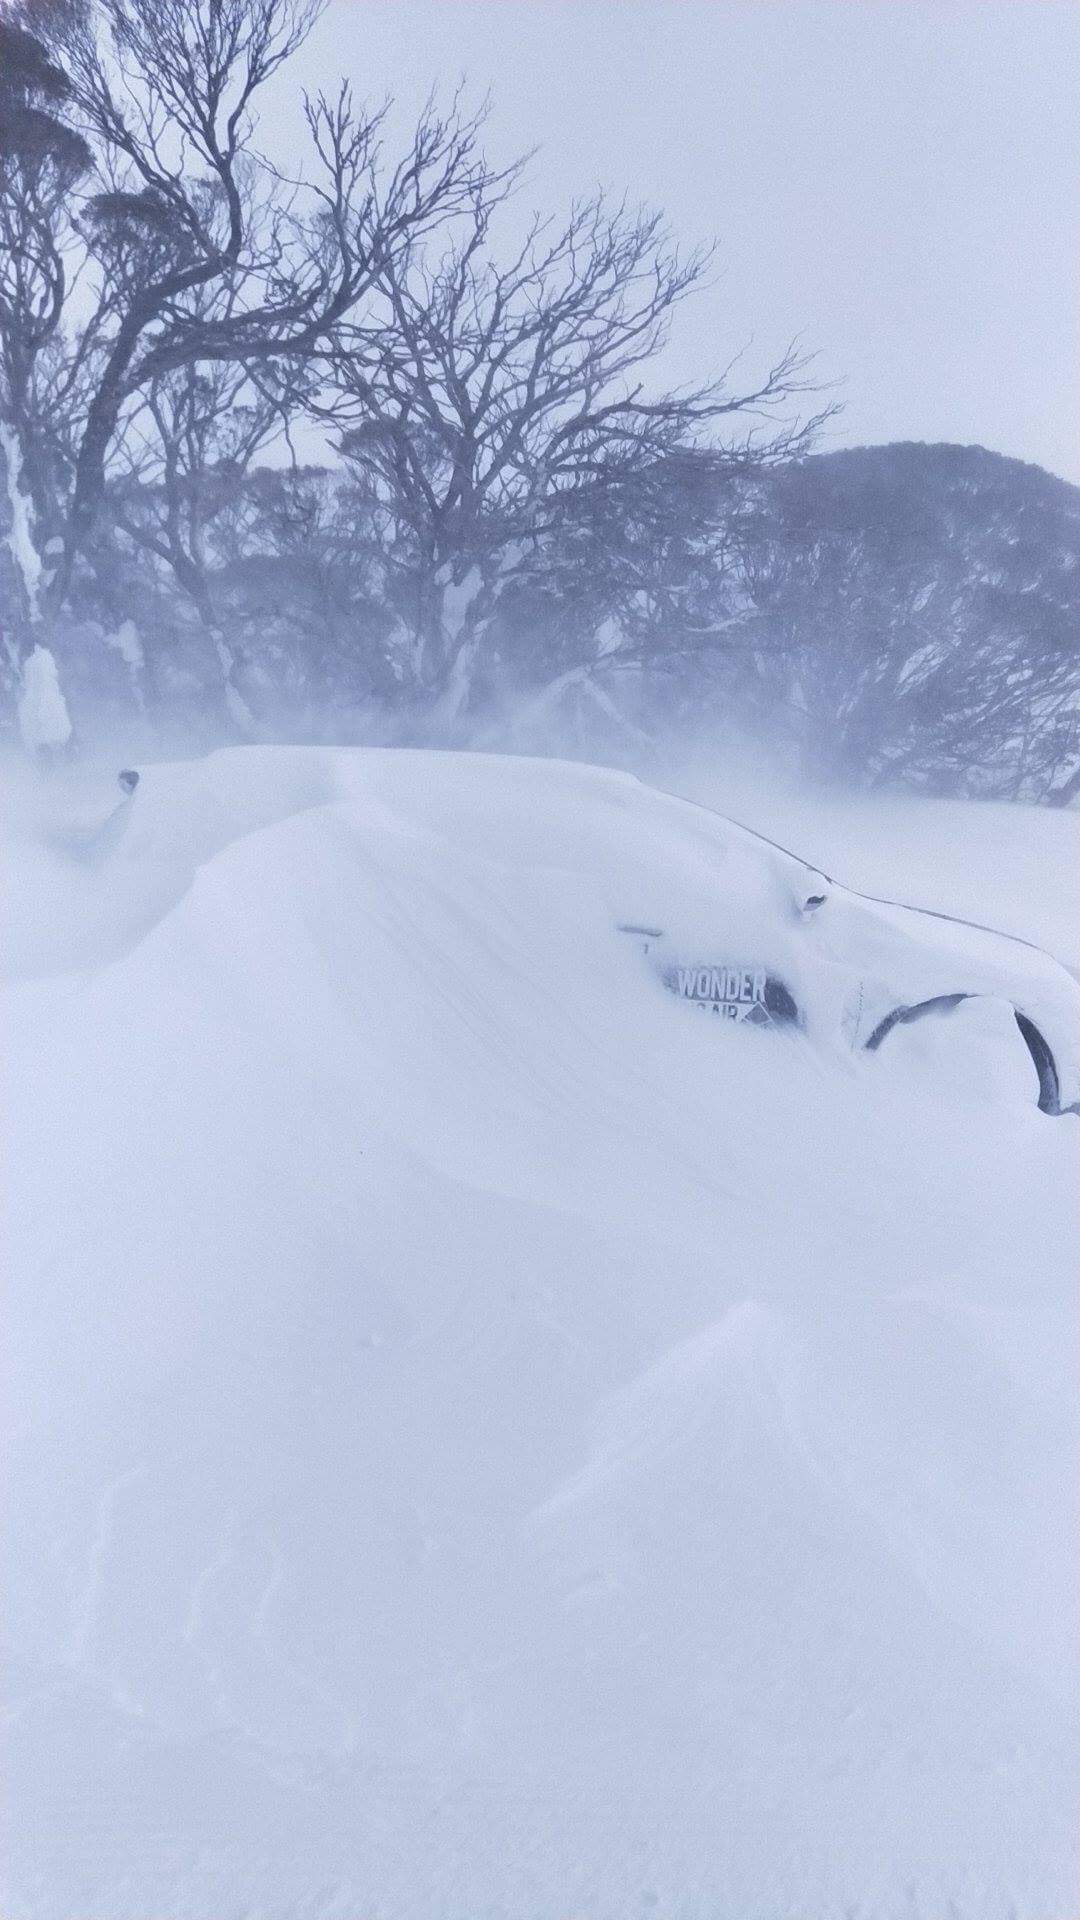 The one hit wonder car slowly vanishing into the snowstorm.